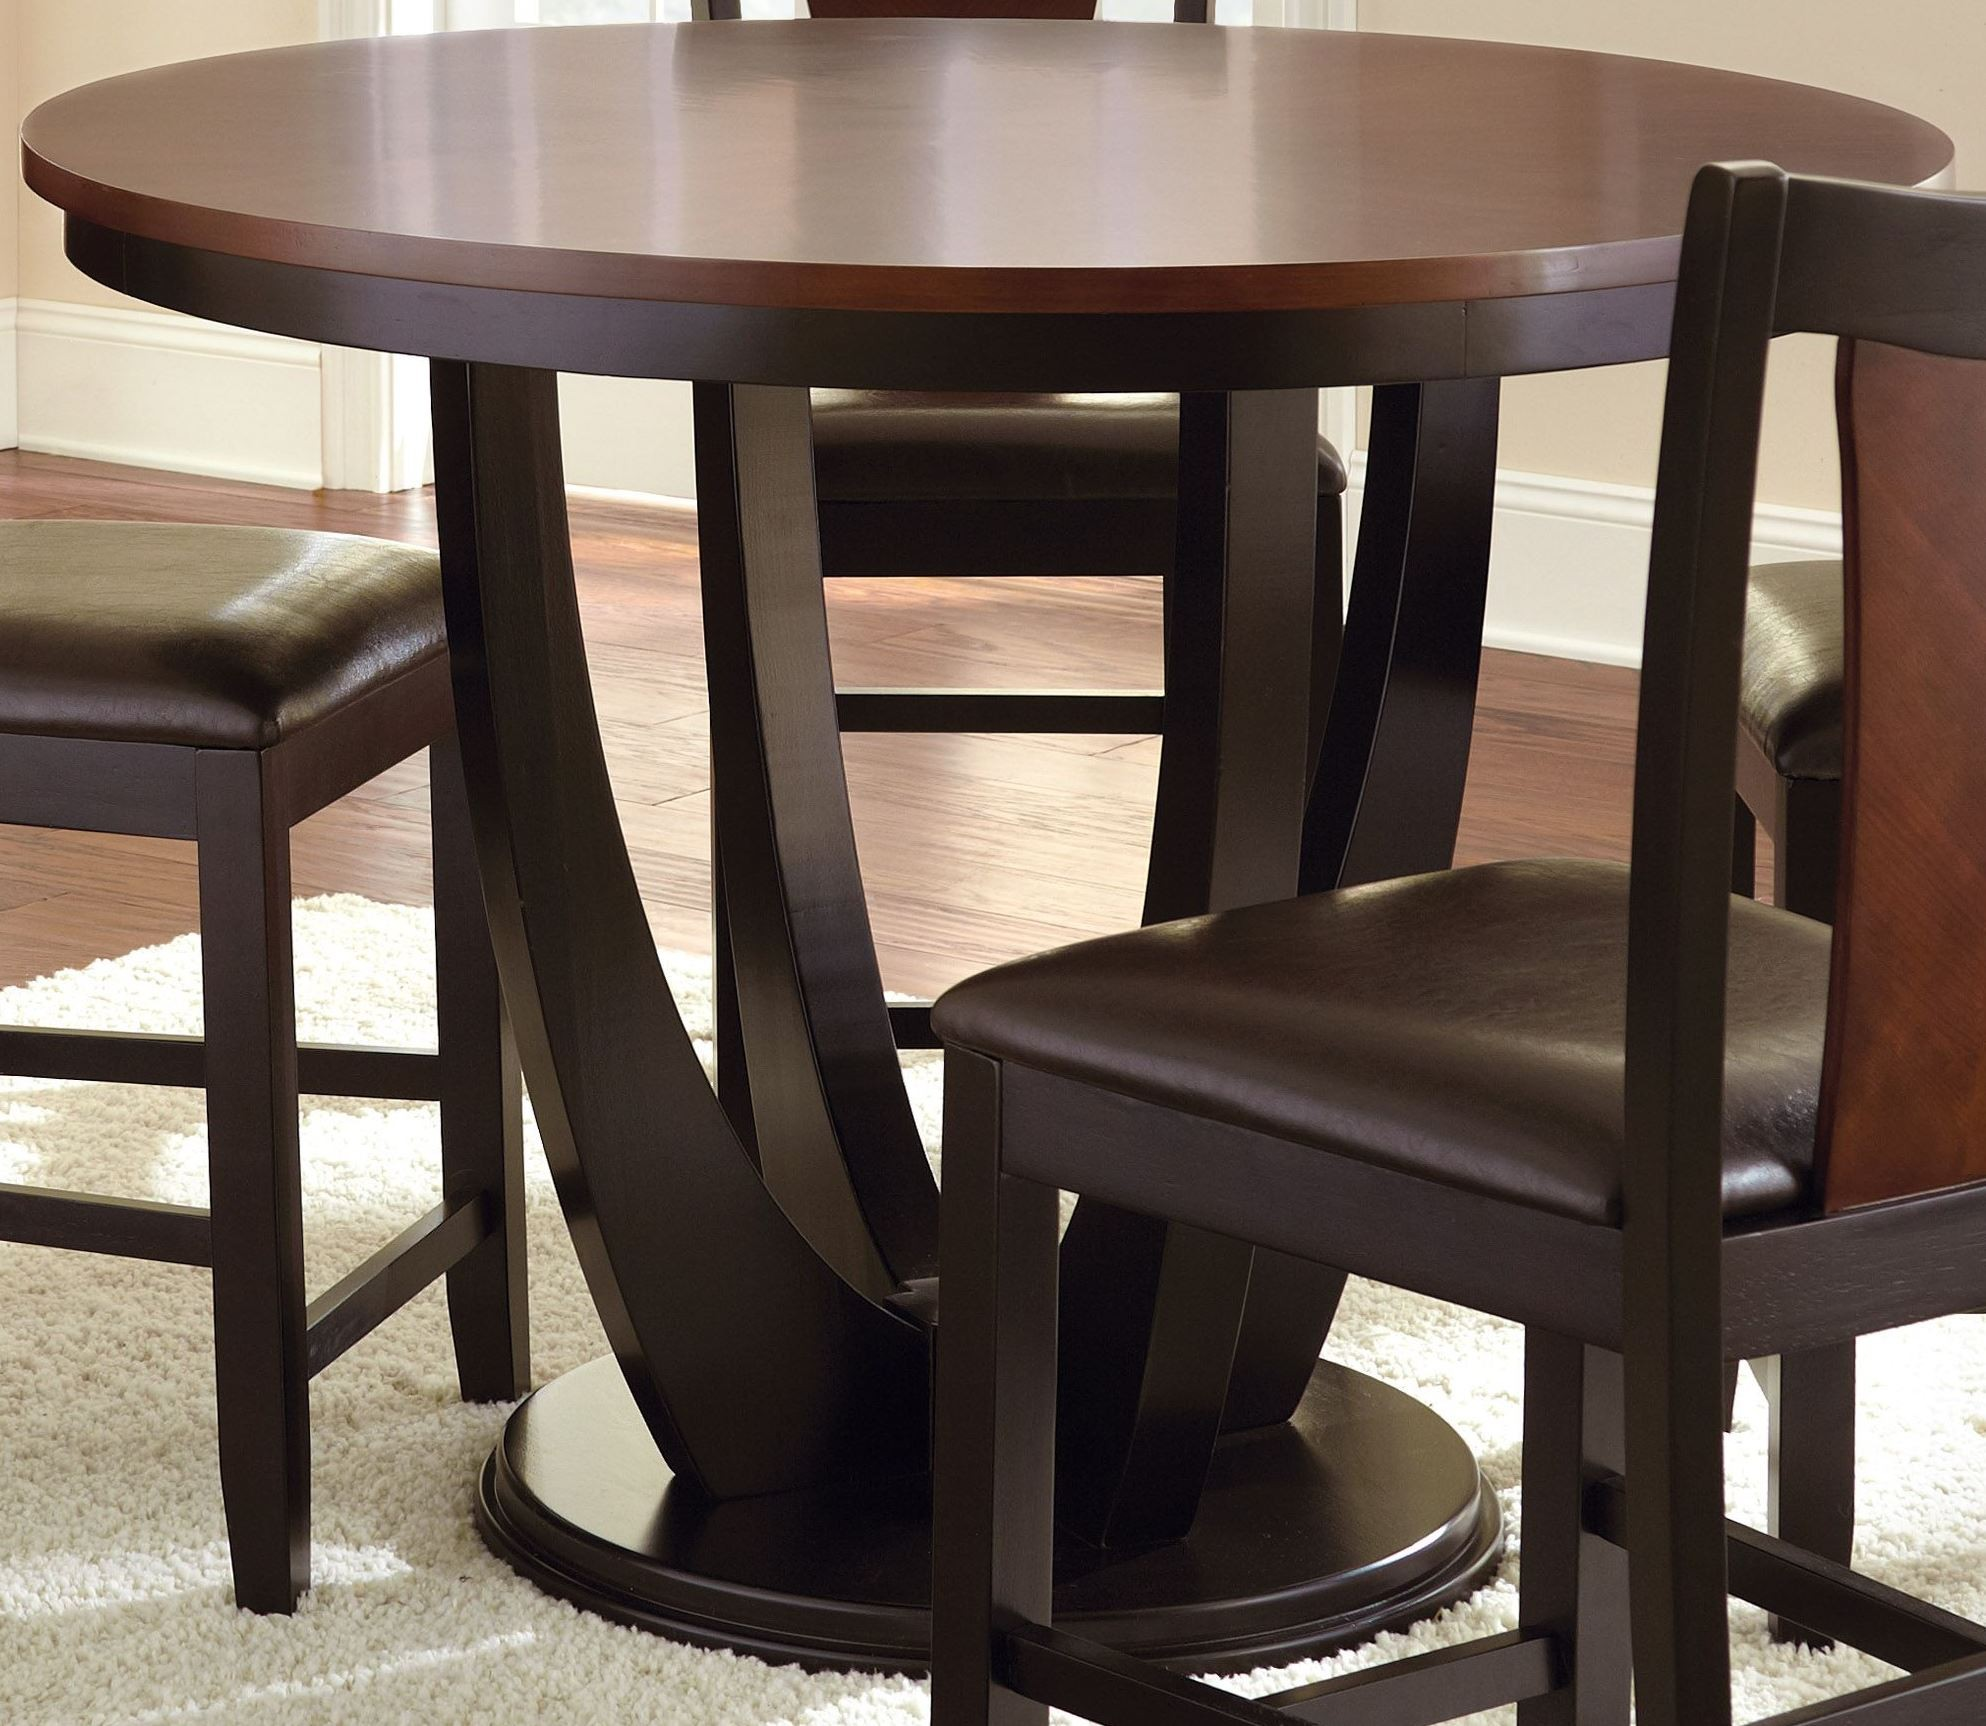 oakton round counter height dining table from steve silver ok4848pb